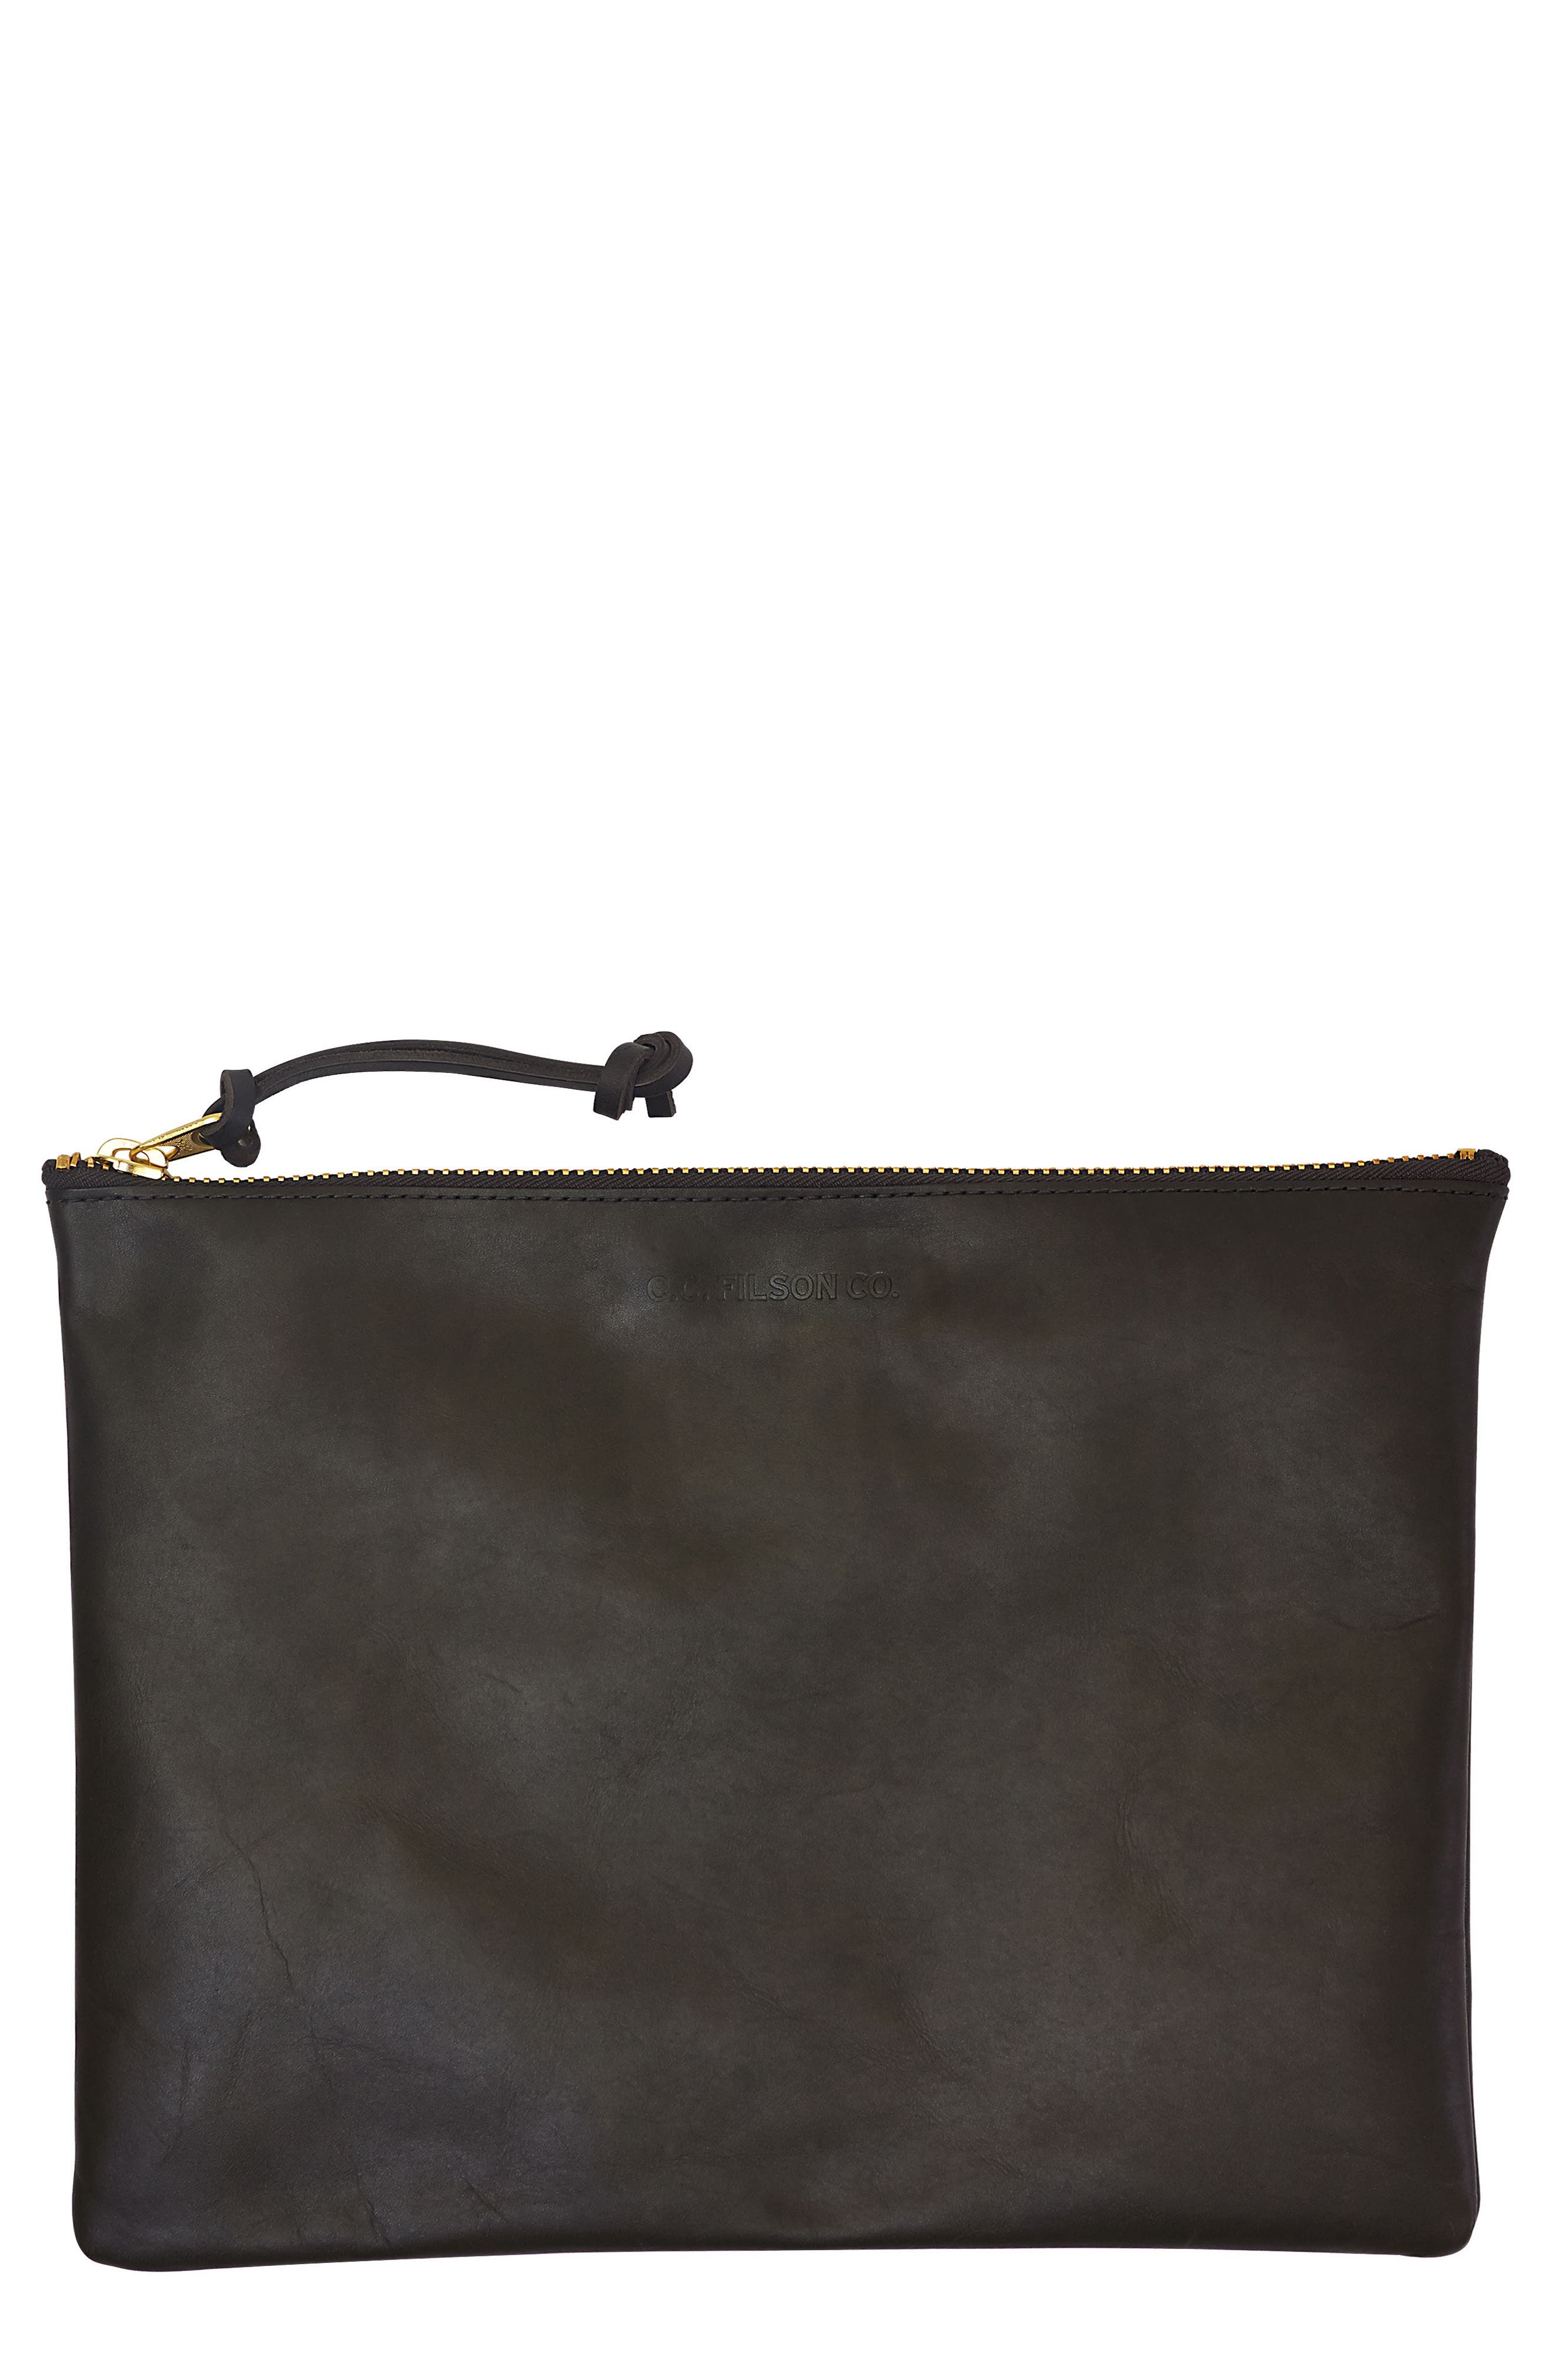 Large Leather Pouch,                             Main thumbnail 1, color,                             Moss